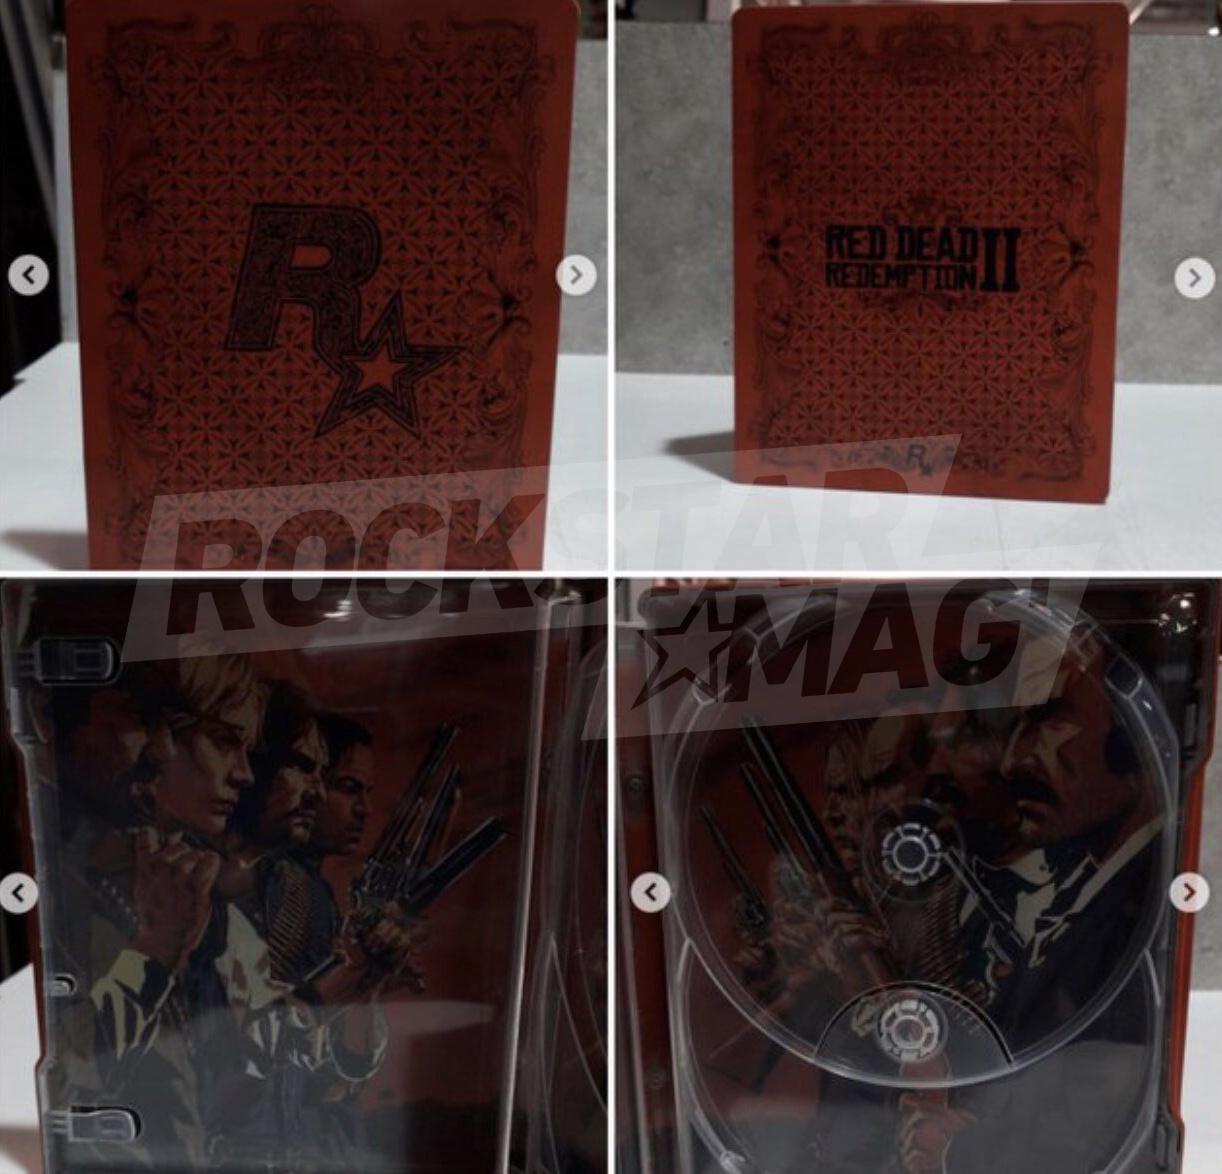 Red Dead Redemption II : Leak Steelbook